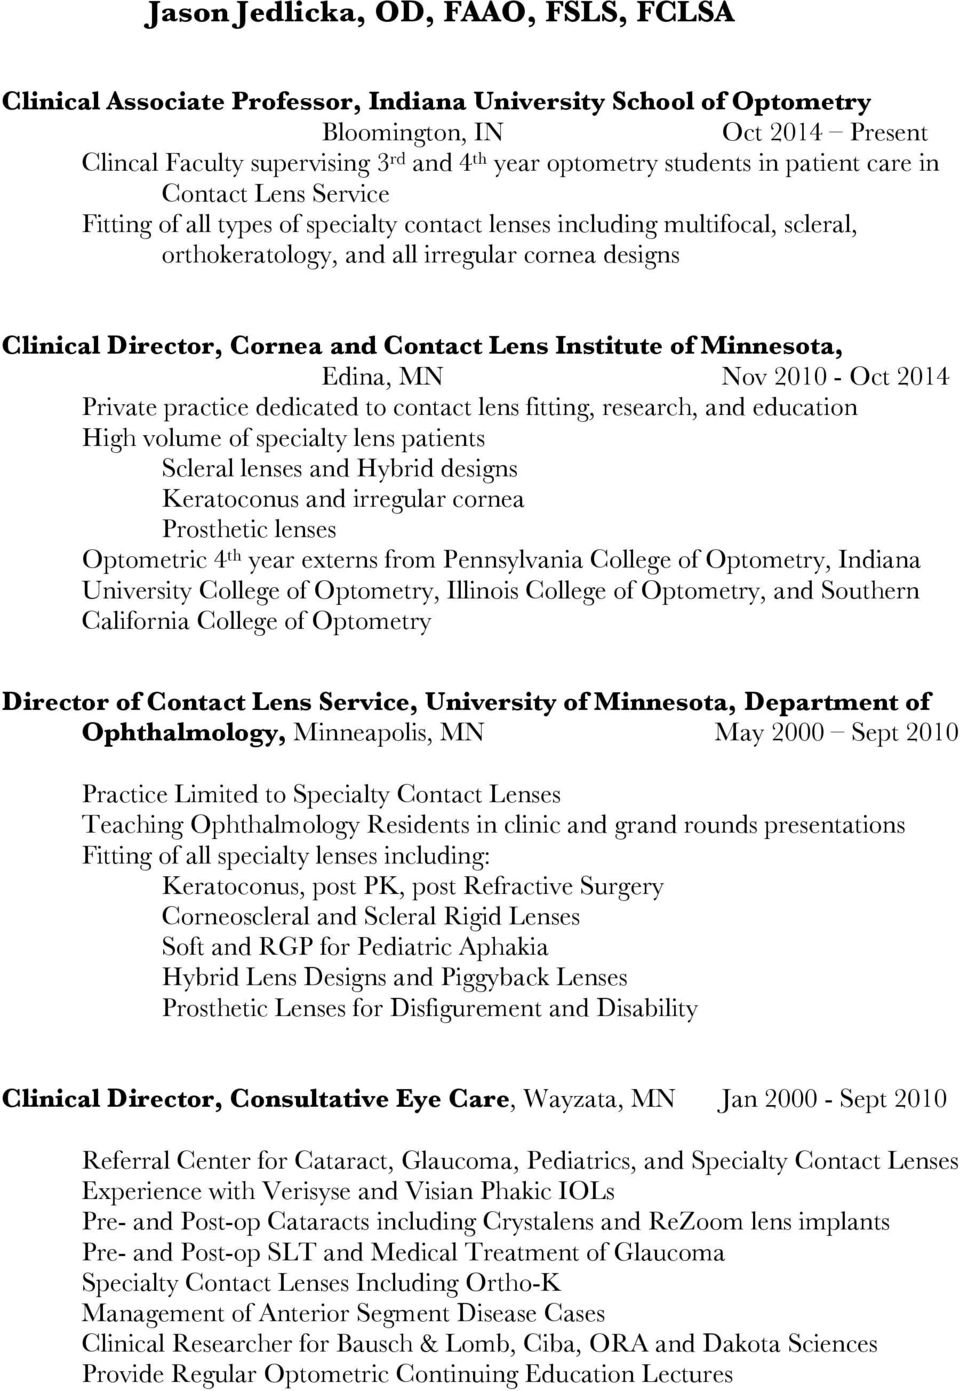 Cornea and Contact Lens Institute of Minnesota, Edina, MN Nov 2010 - Oct 2014 Private practice dedicated to contact lens fitting, research, and education High volume of specialty lens patients